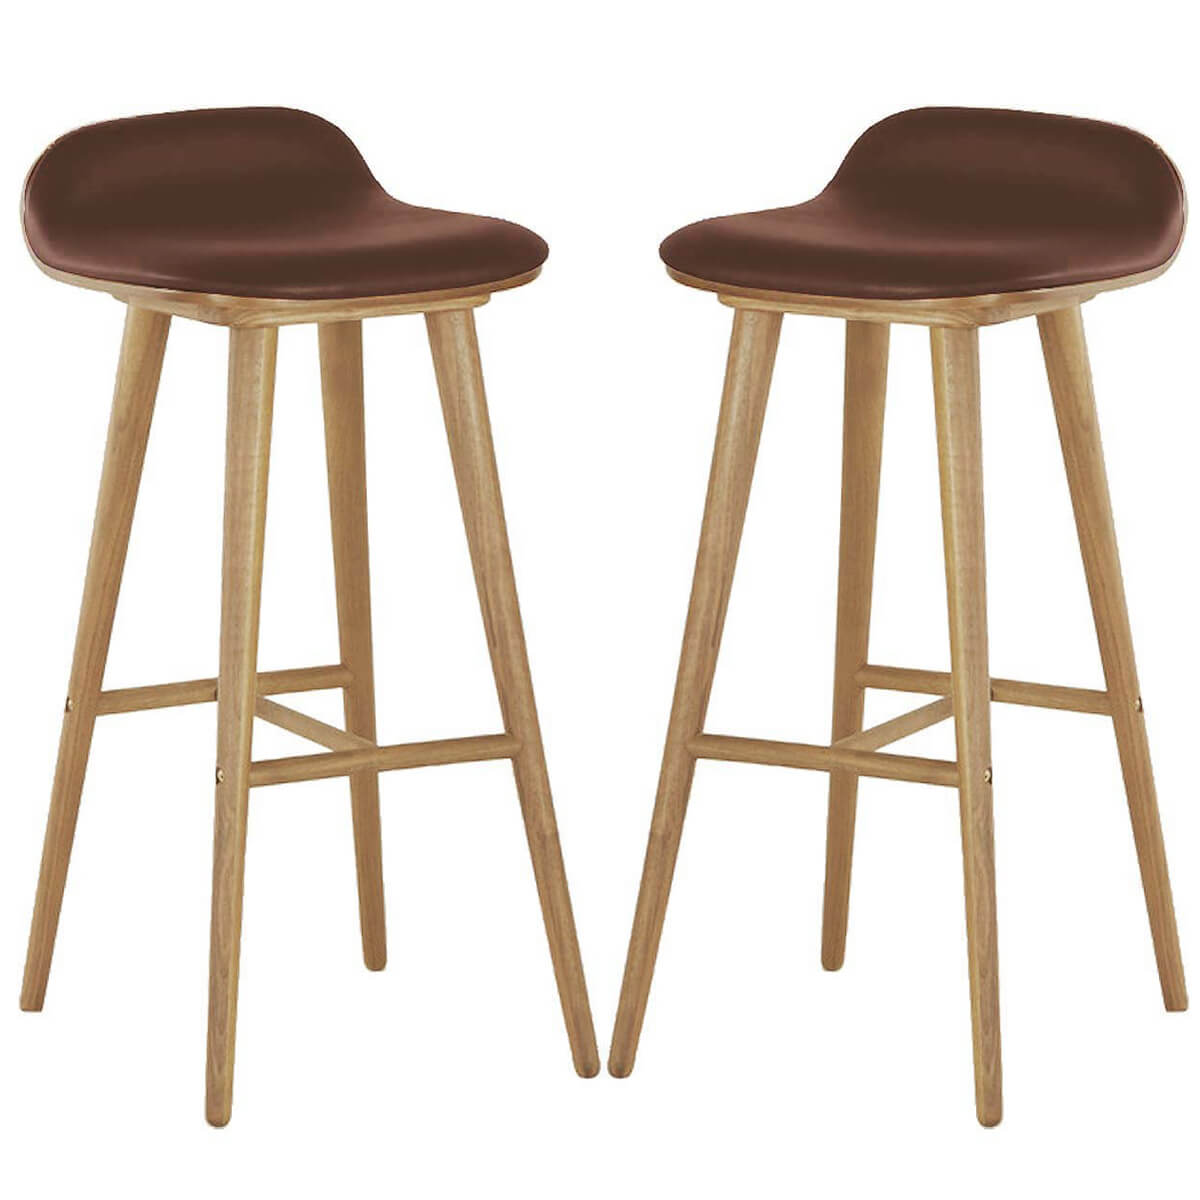 oak wood bar stools